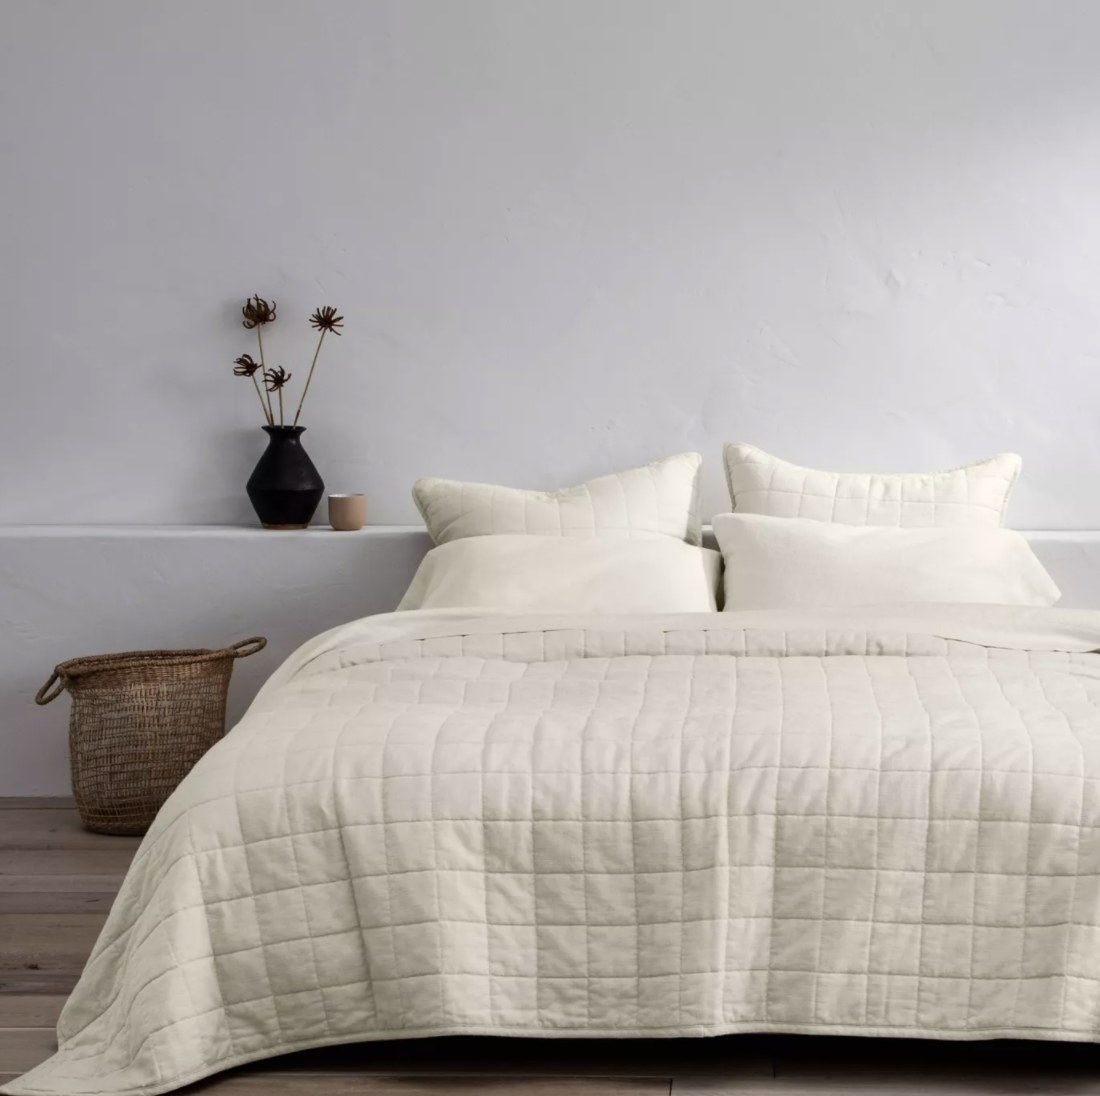 Linen quilt on bed